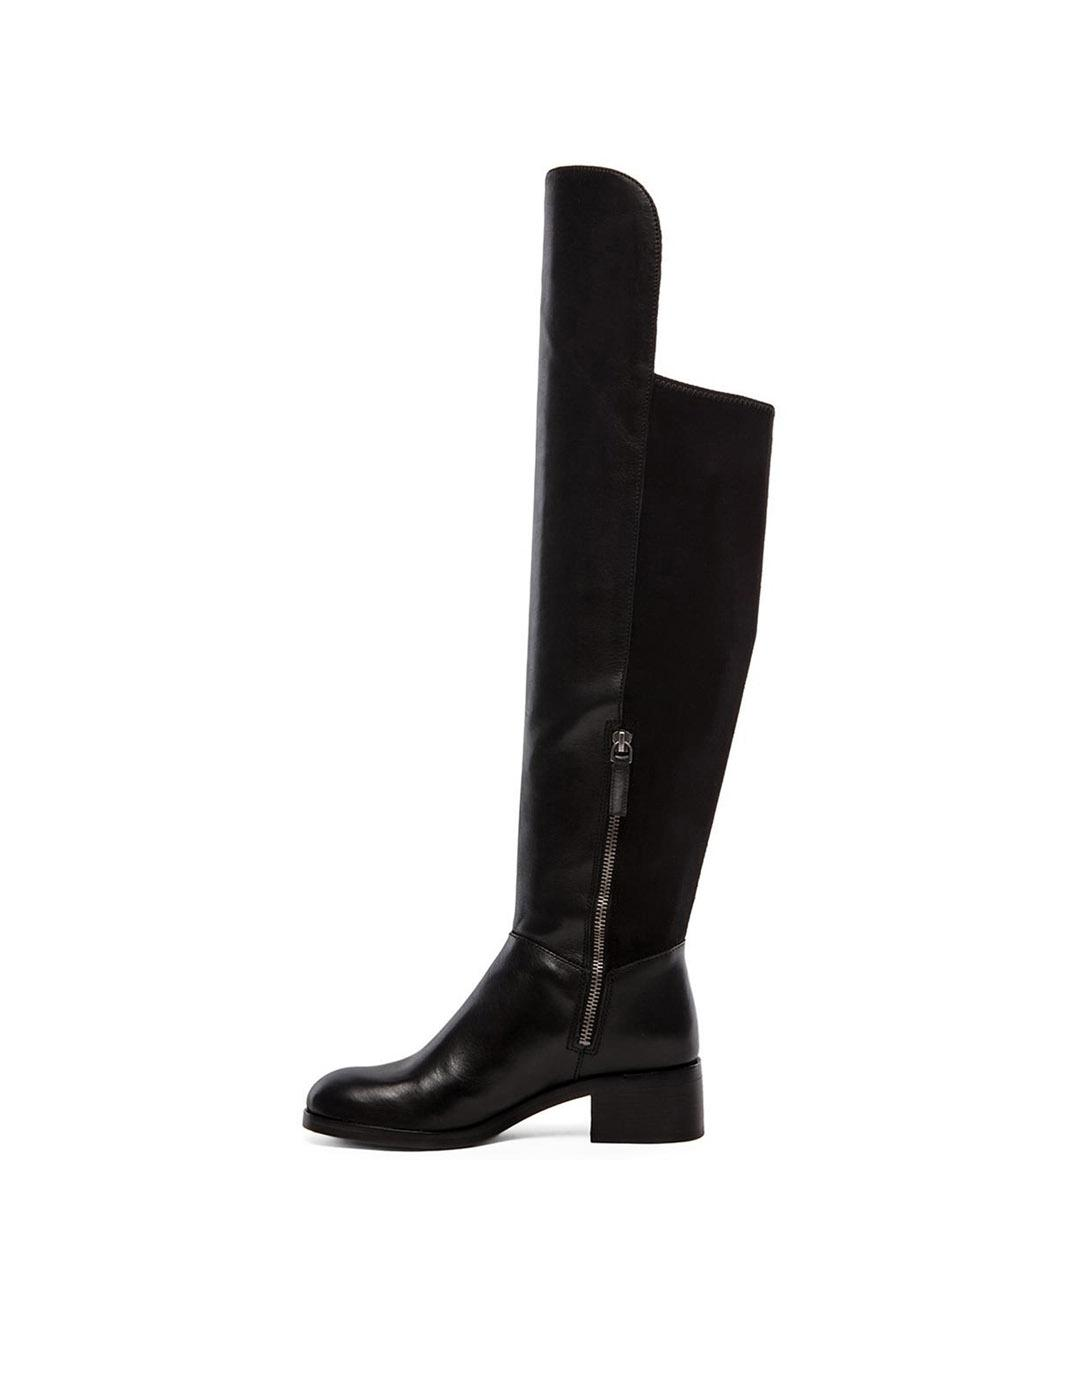 Botas altas Marc by Marc Jacobs negras Boot Up planas